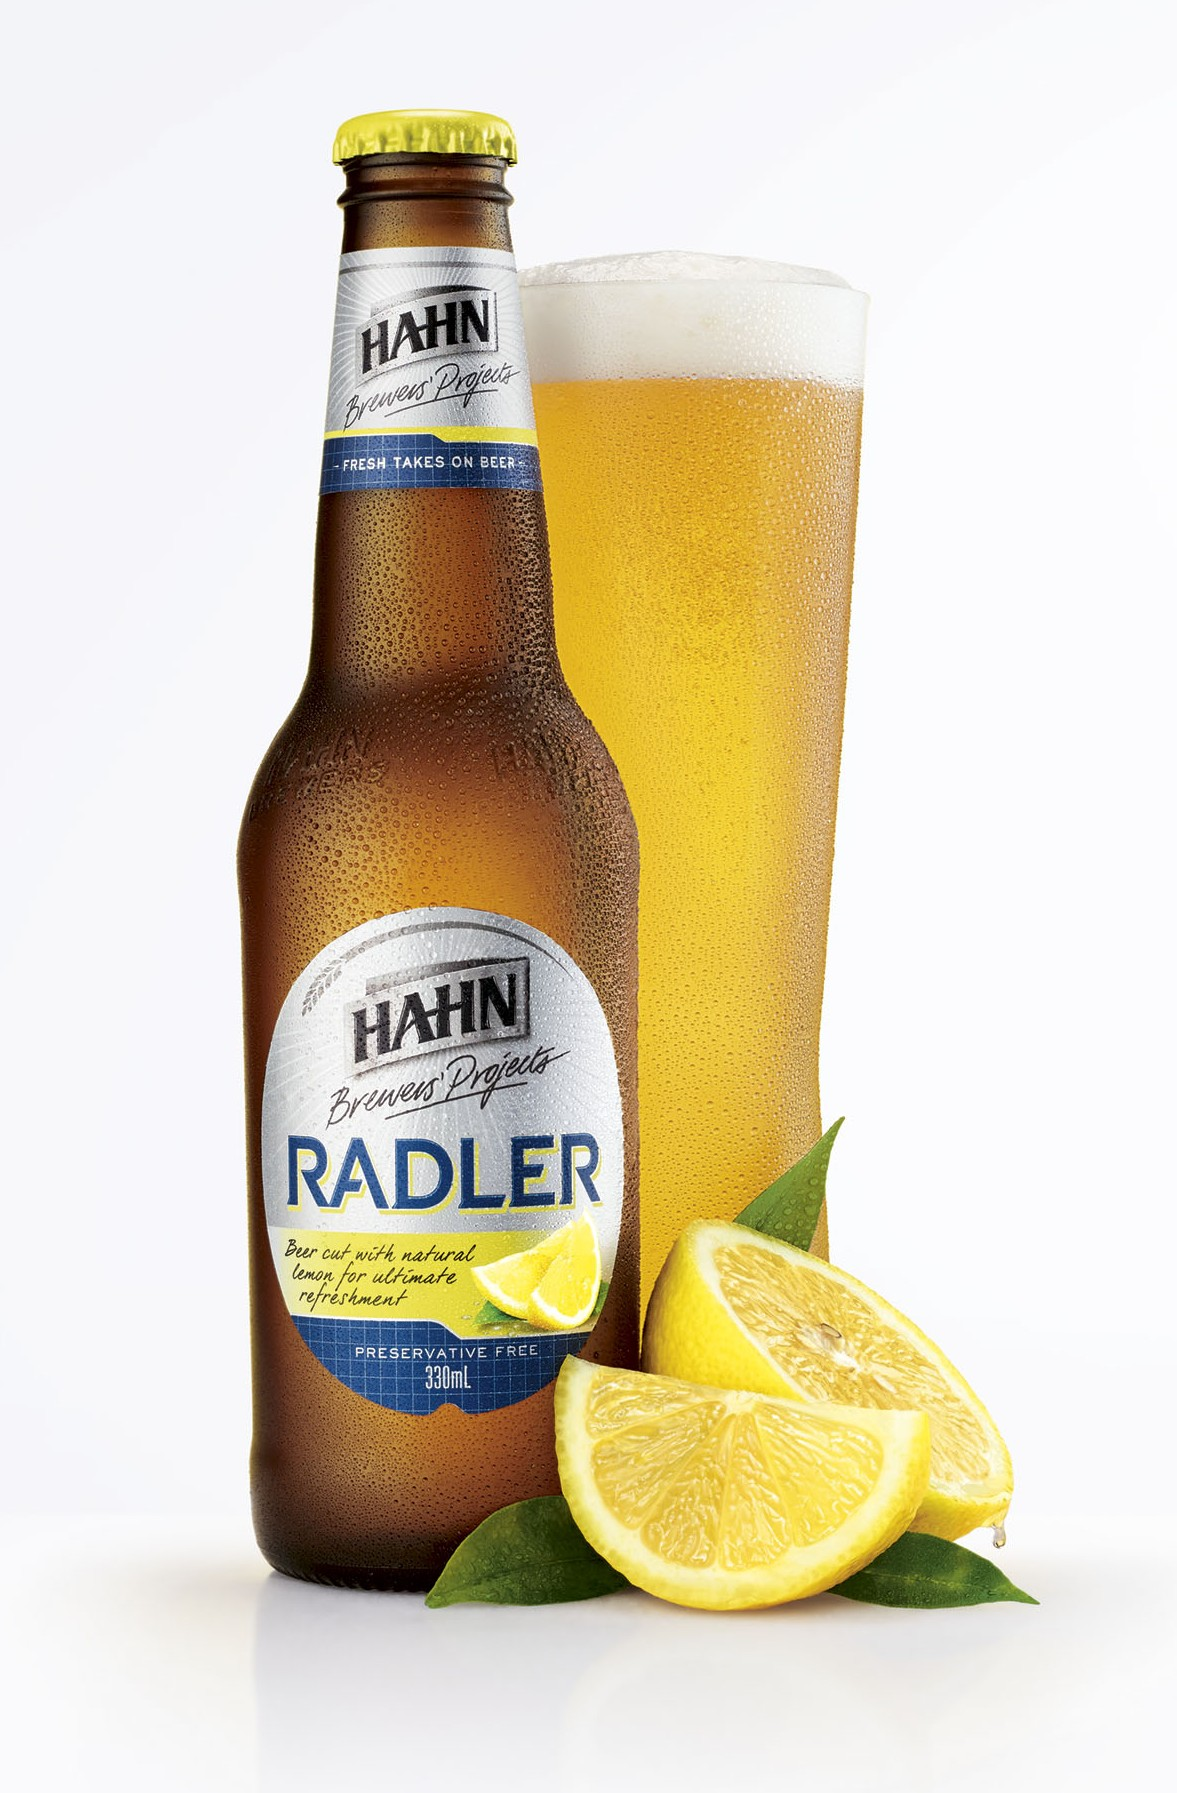 Hahn Brewers' Projects launches Radler